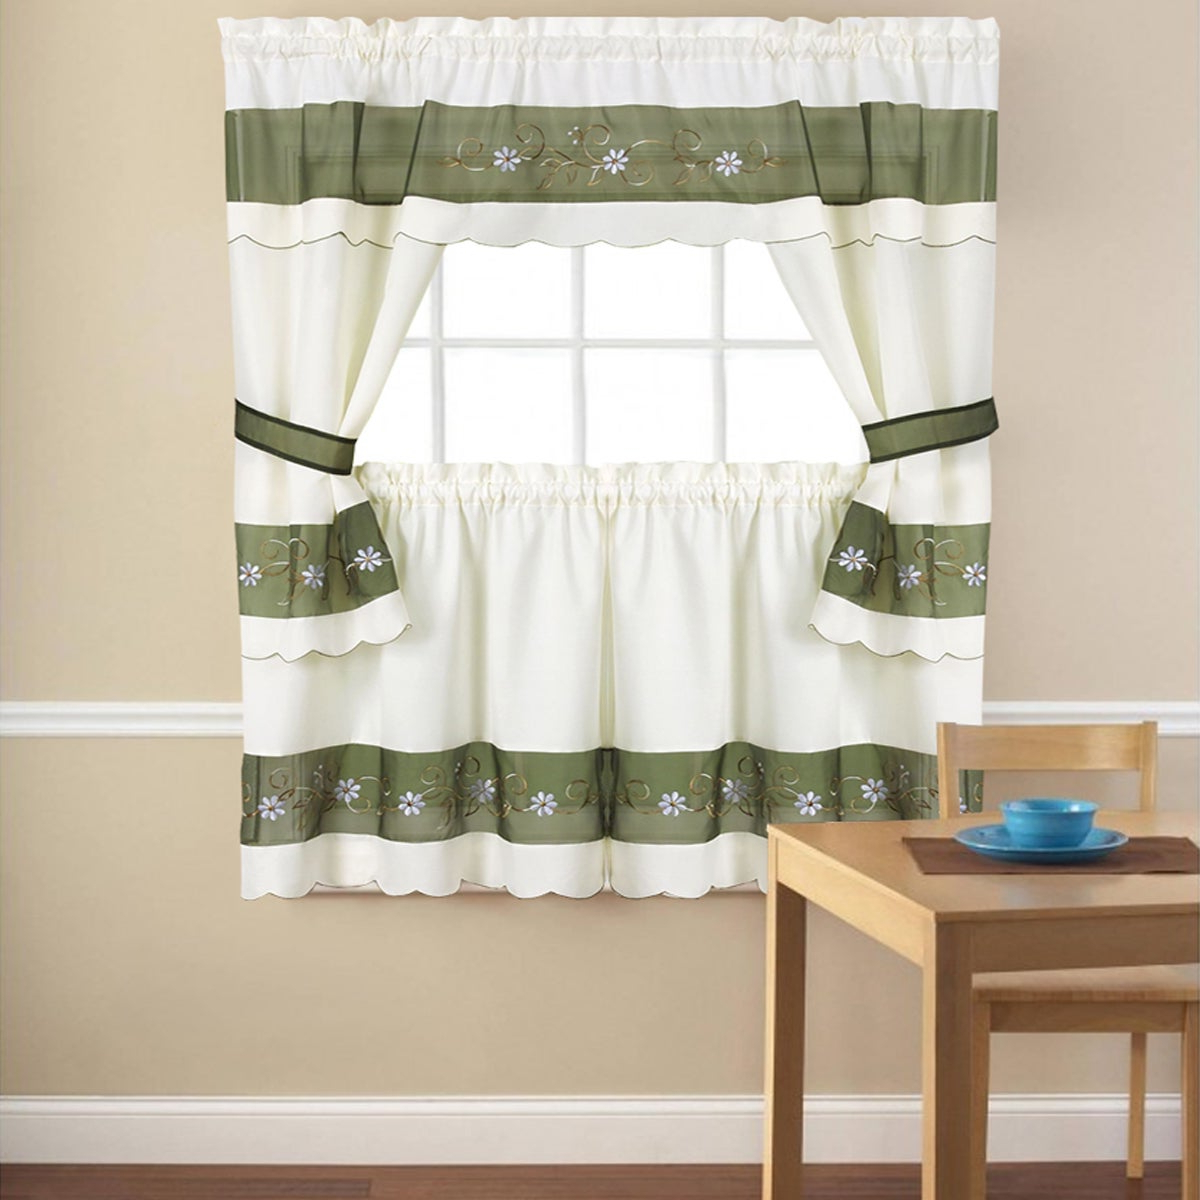 Most Current Embroidered Floral 5 Piece Kitchen Curtain Set Within Cotton Lace 5 Piece Window Tier And Swag Sets (Gallery 7 of 20)